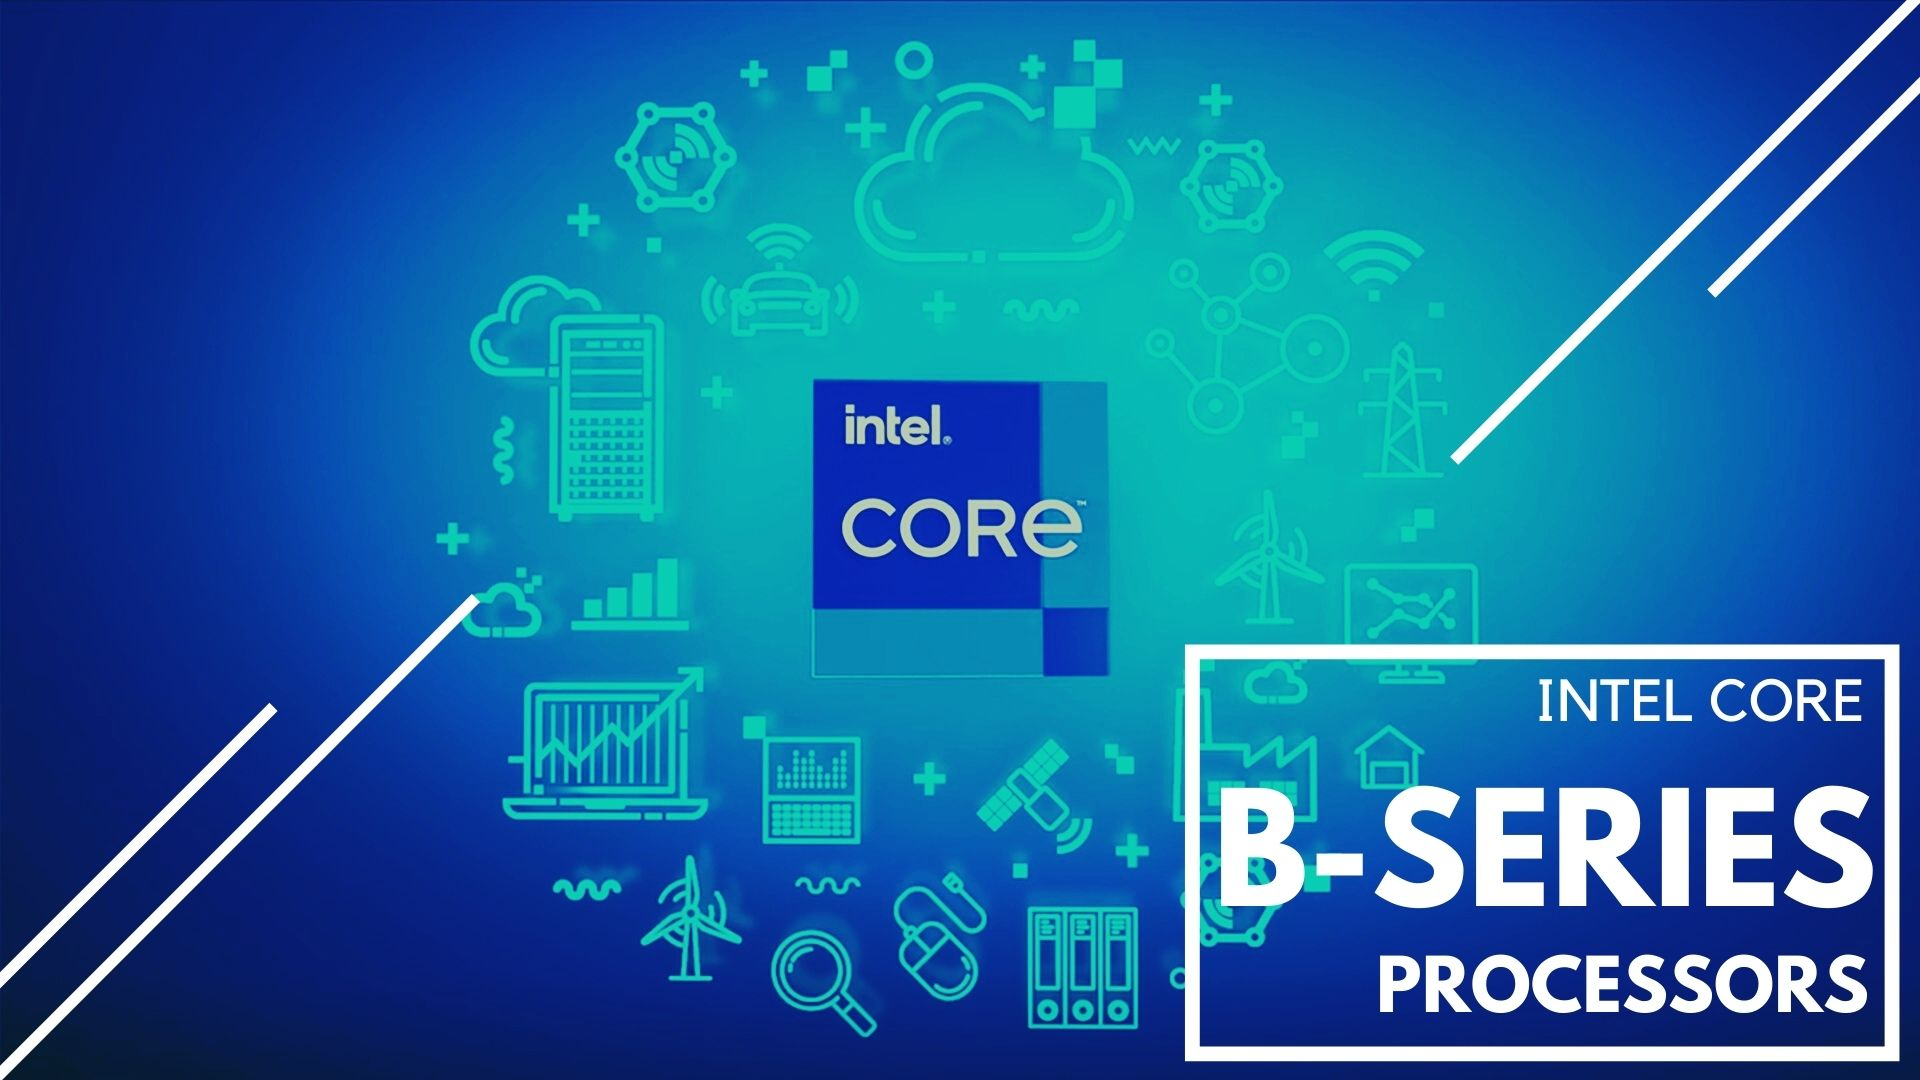 Intel B Series Processors launched with 65W TDP - Full news